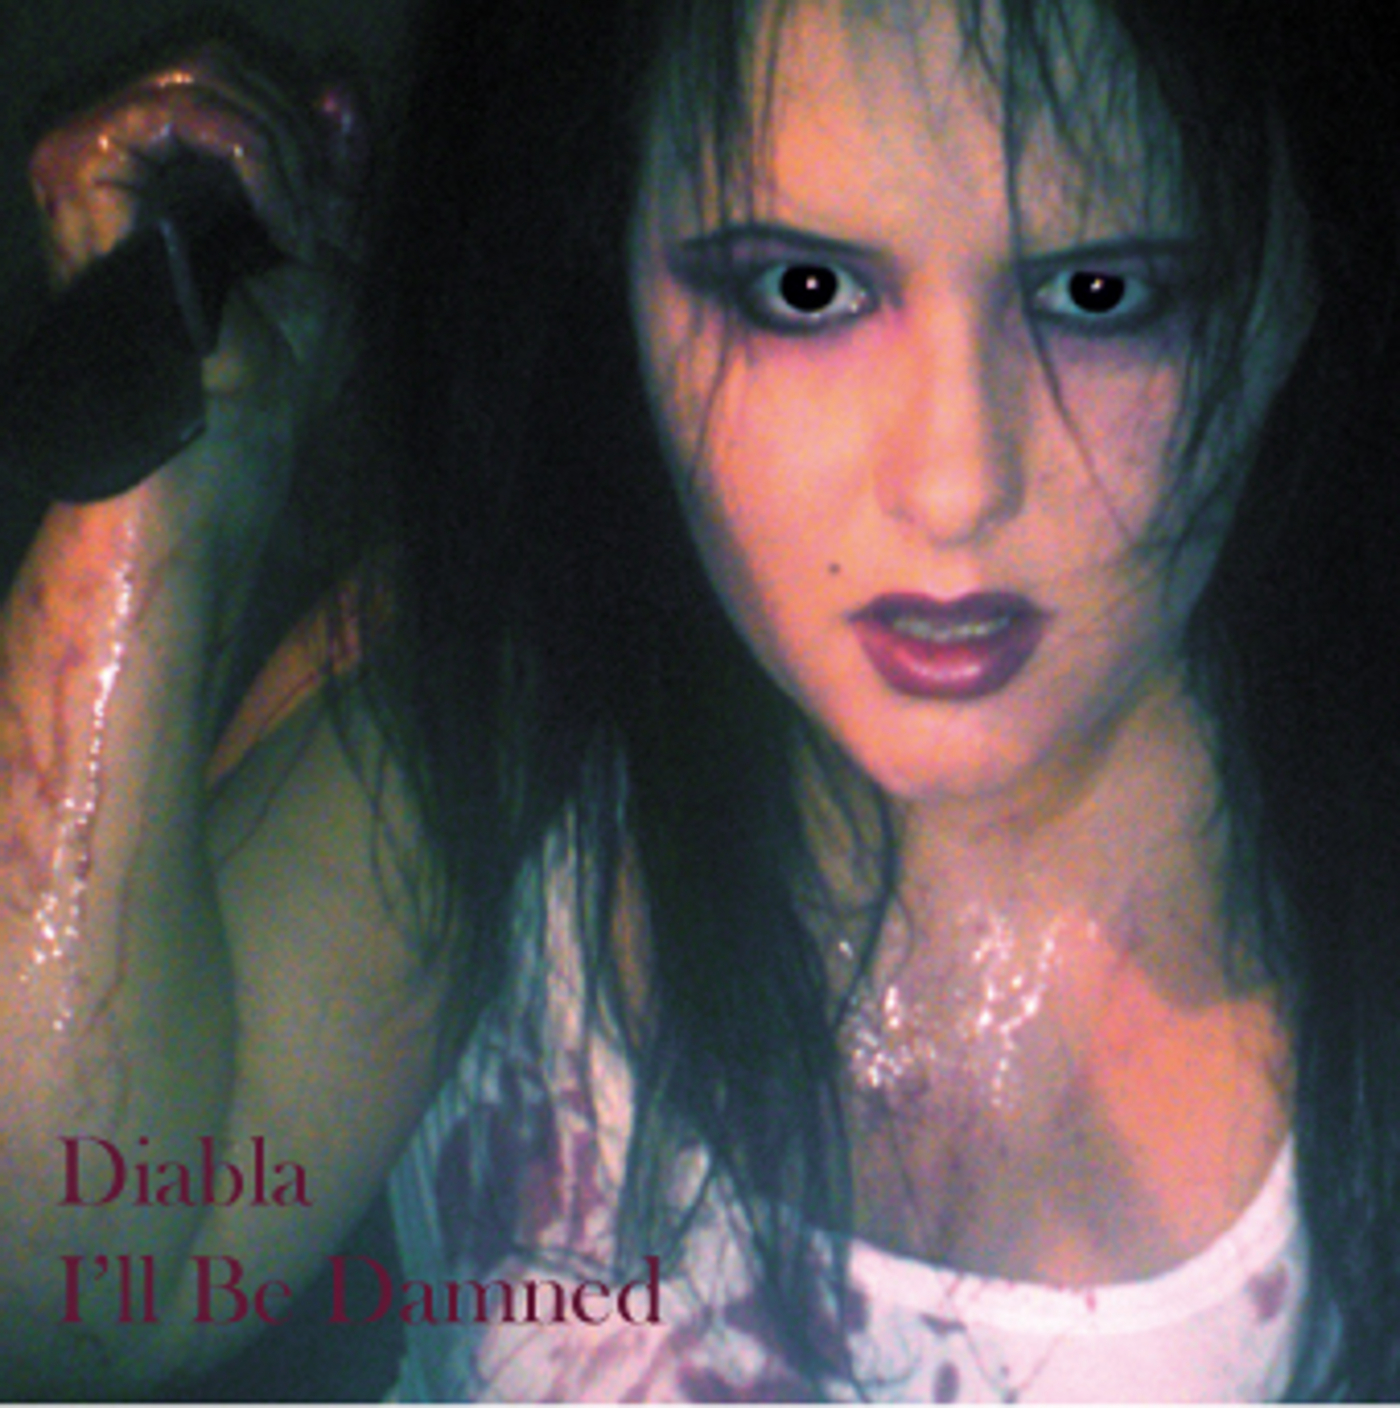 """I'll Be Damned"" album cover"